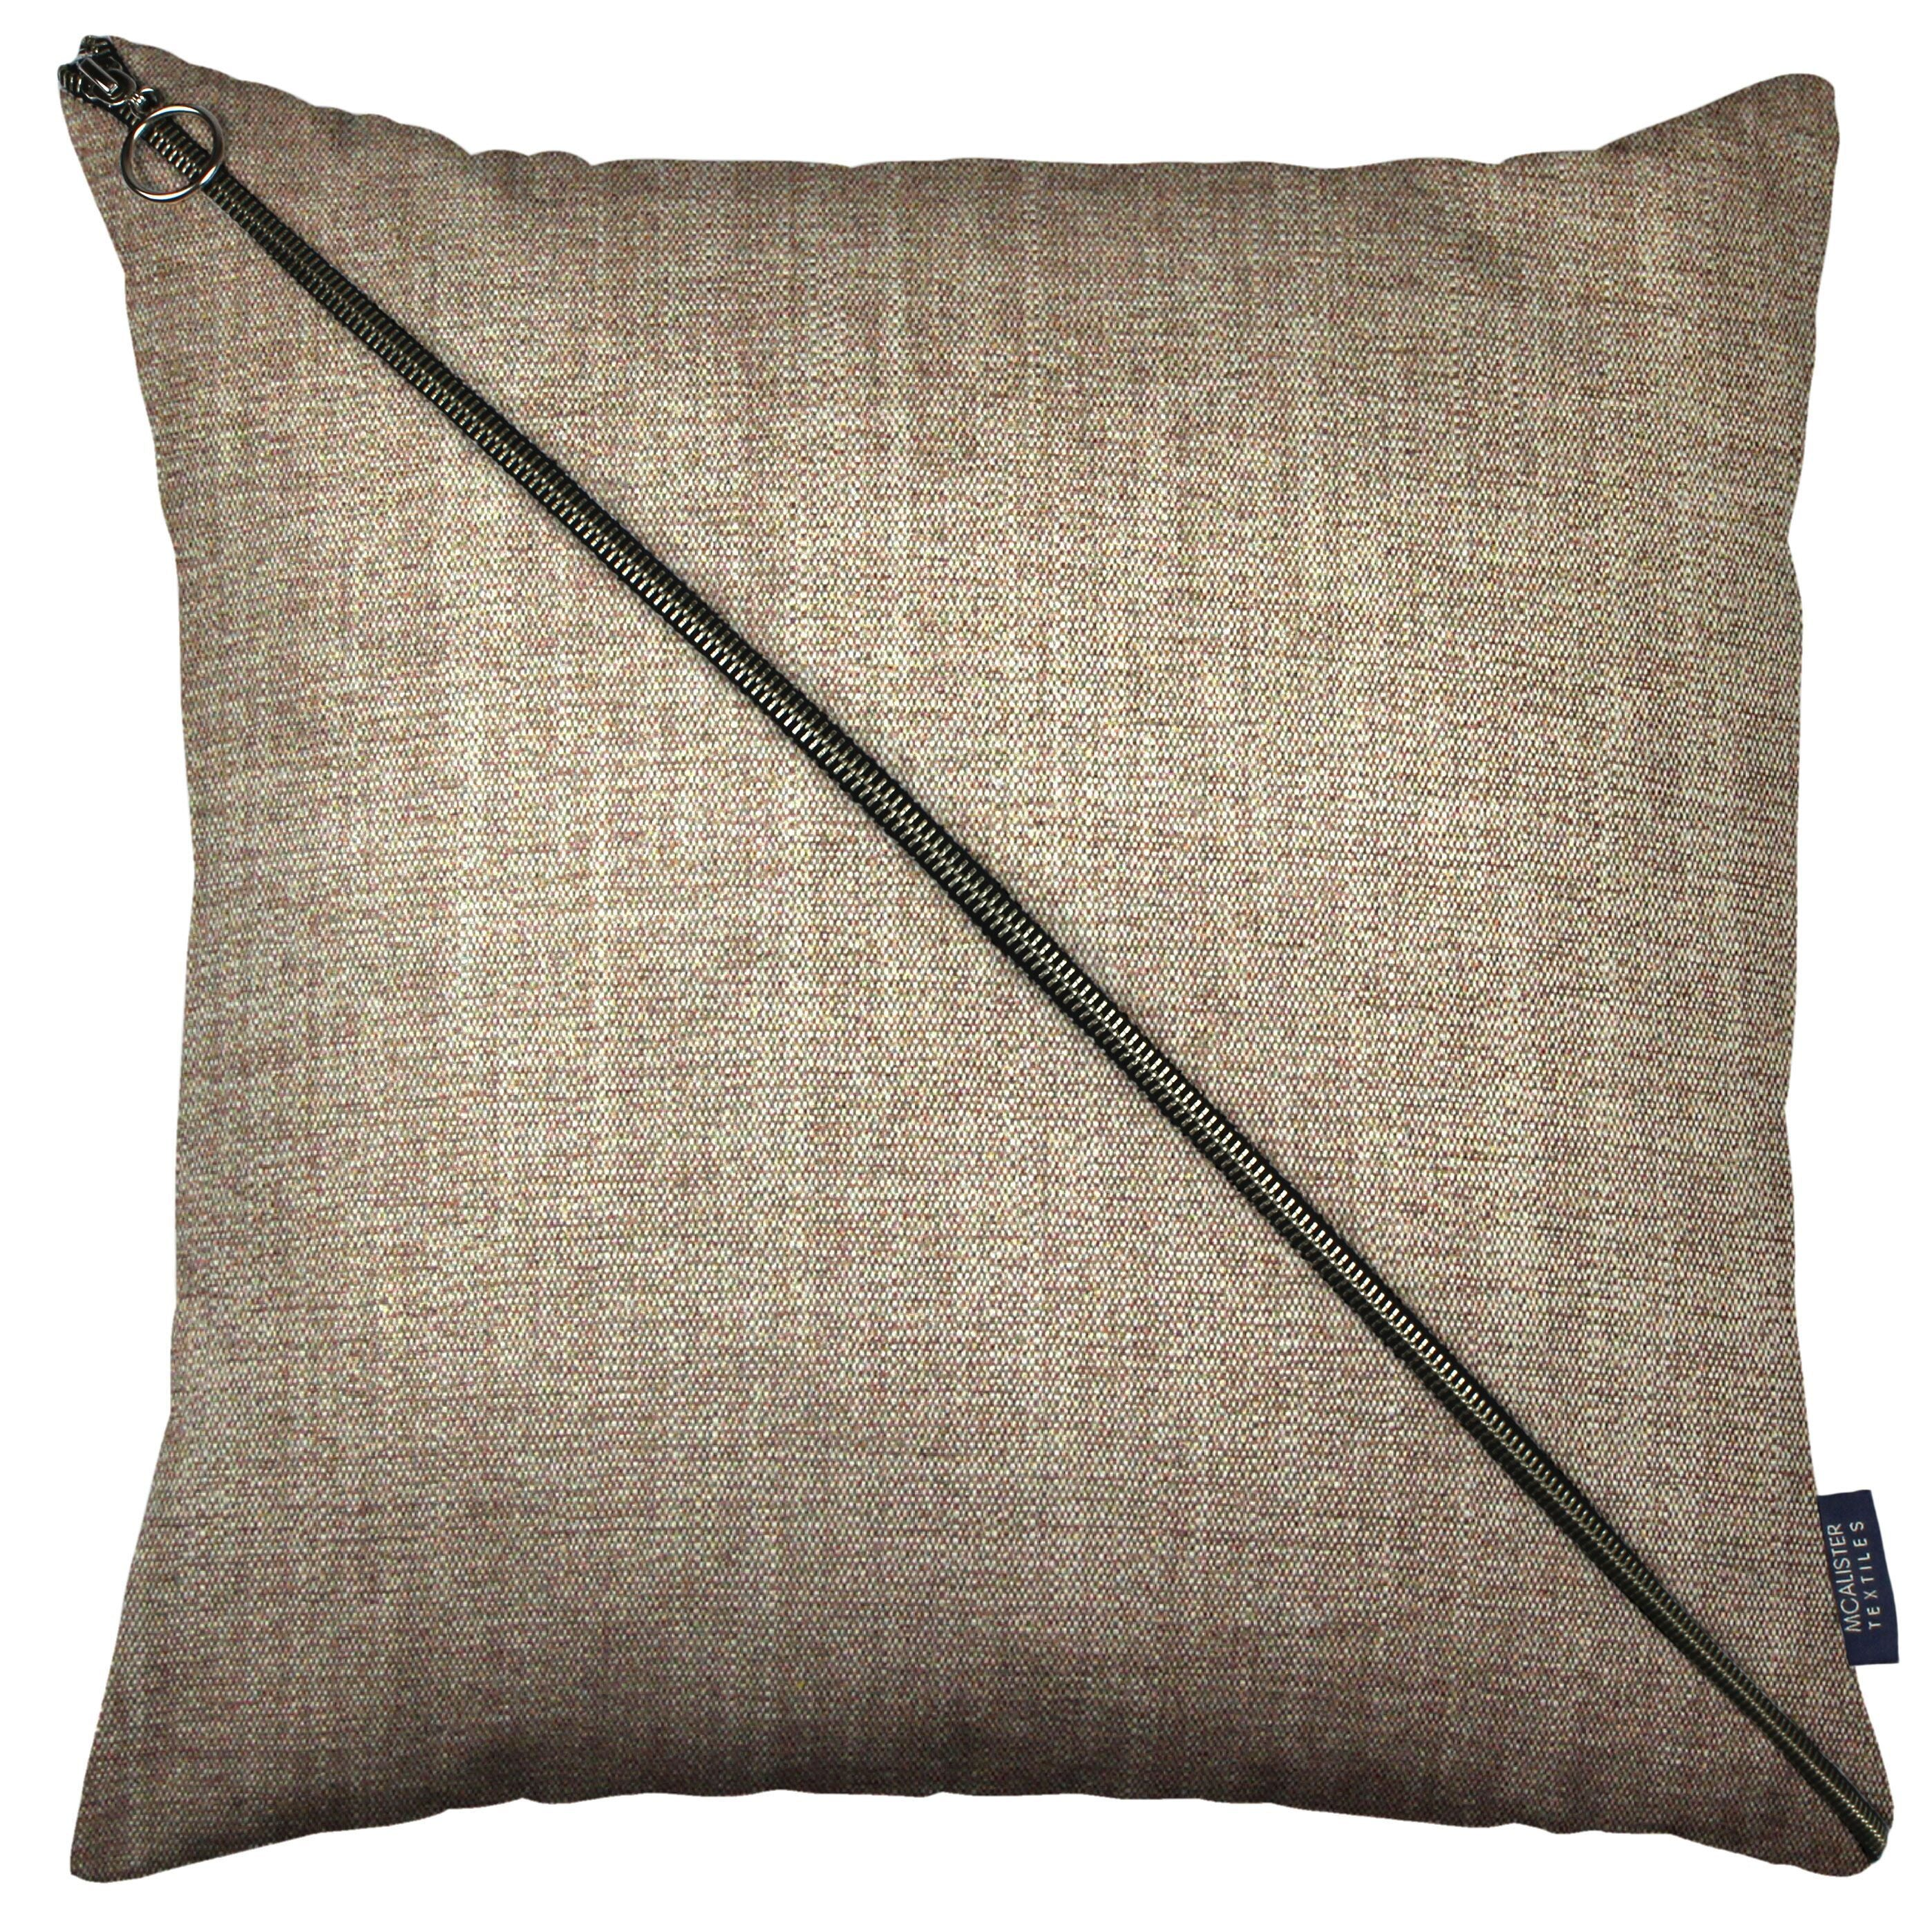 McAlister Textiles Rhumba Diagonal Zip Taupe Linen Cushion Cushions and Covers Cover Only 43cm x 43cm